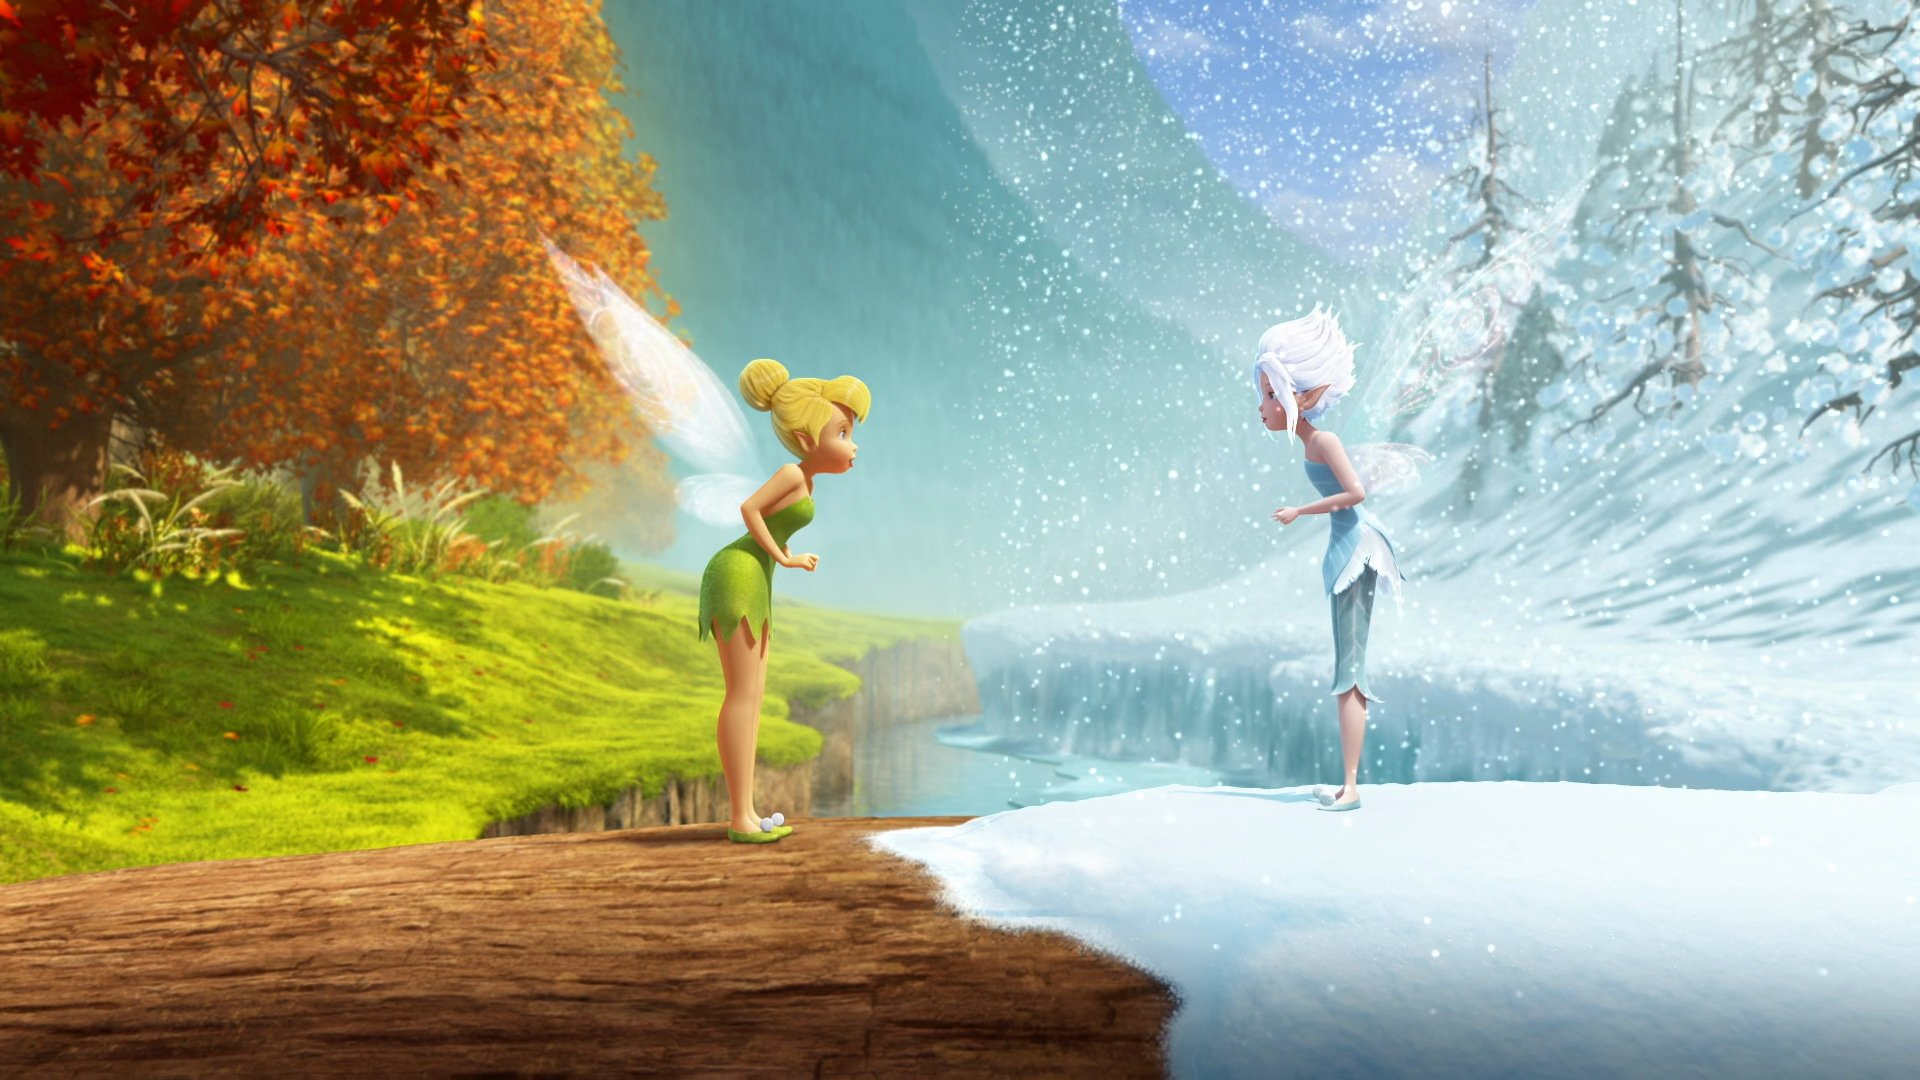 Tinkerbell Fall Wallpaper Tinker Bell Secret Of The Wings Fall And Winter Hd